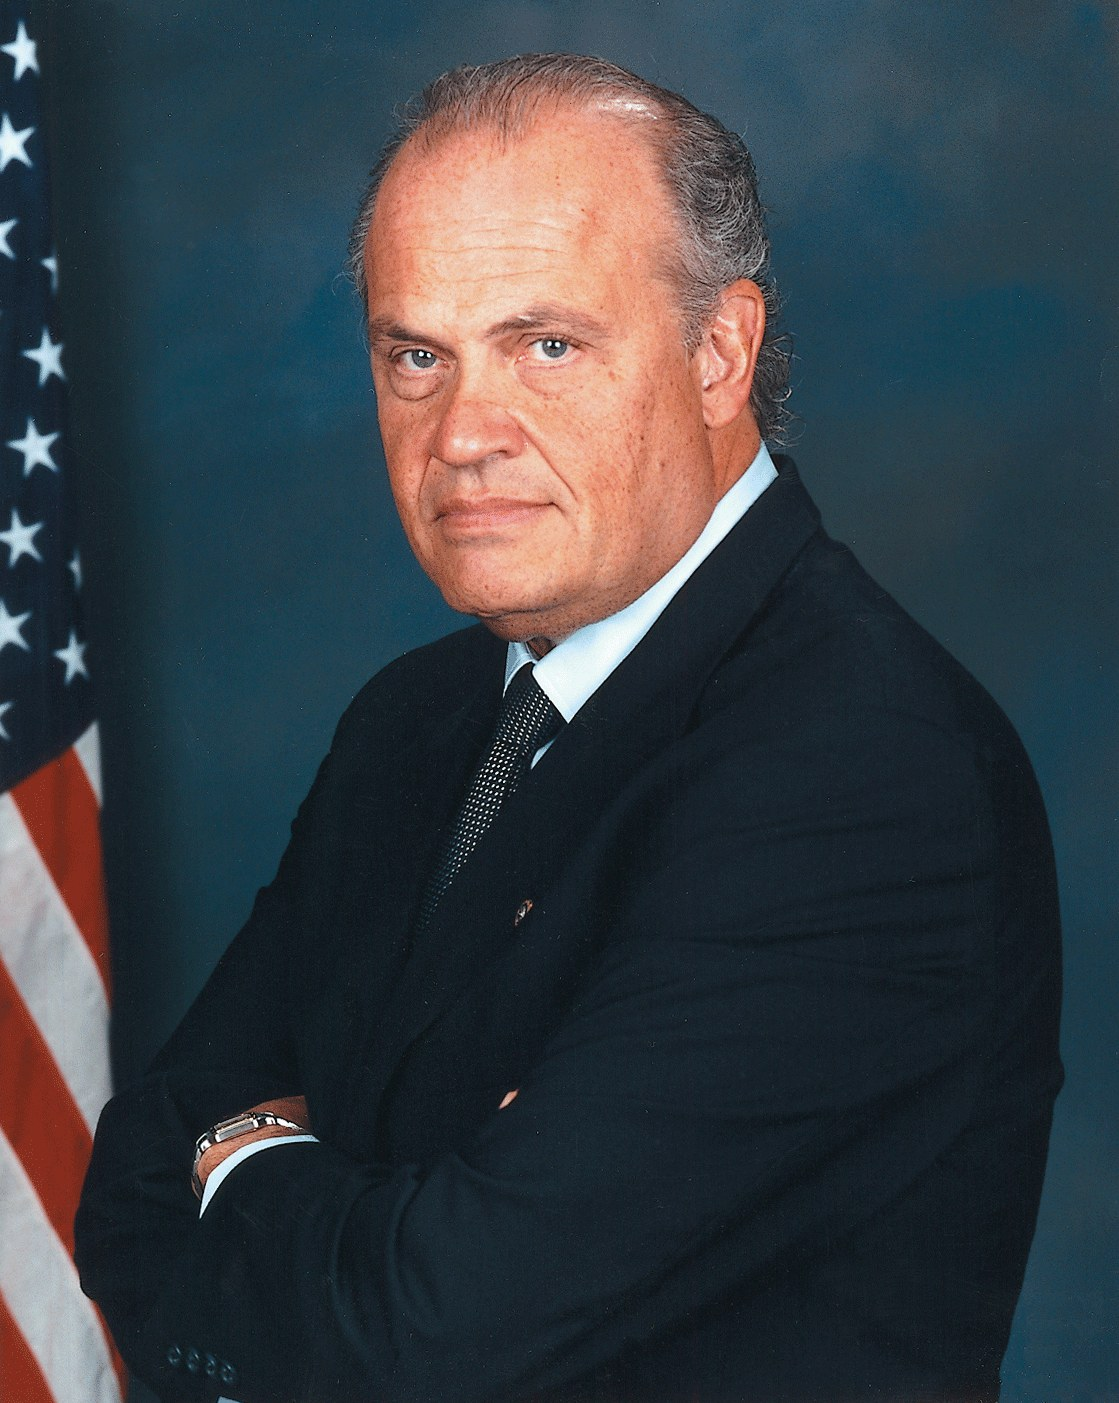 Fred Thompson, Rest in Peace.